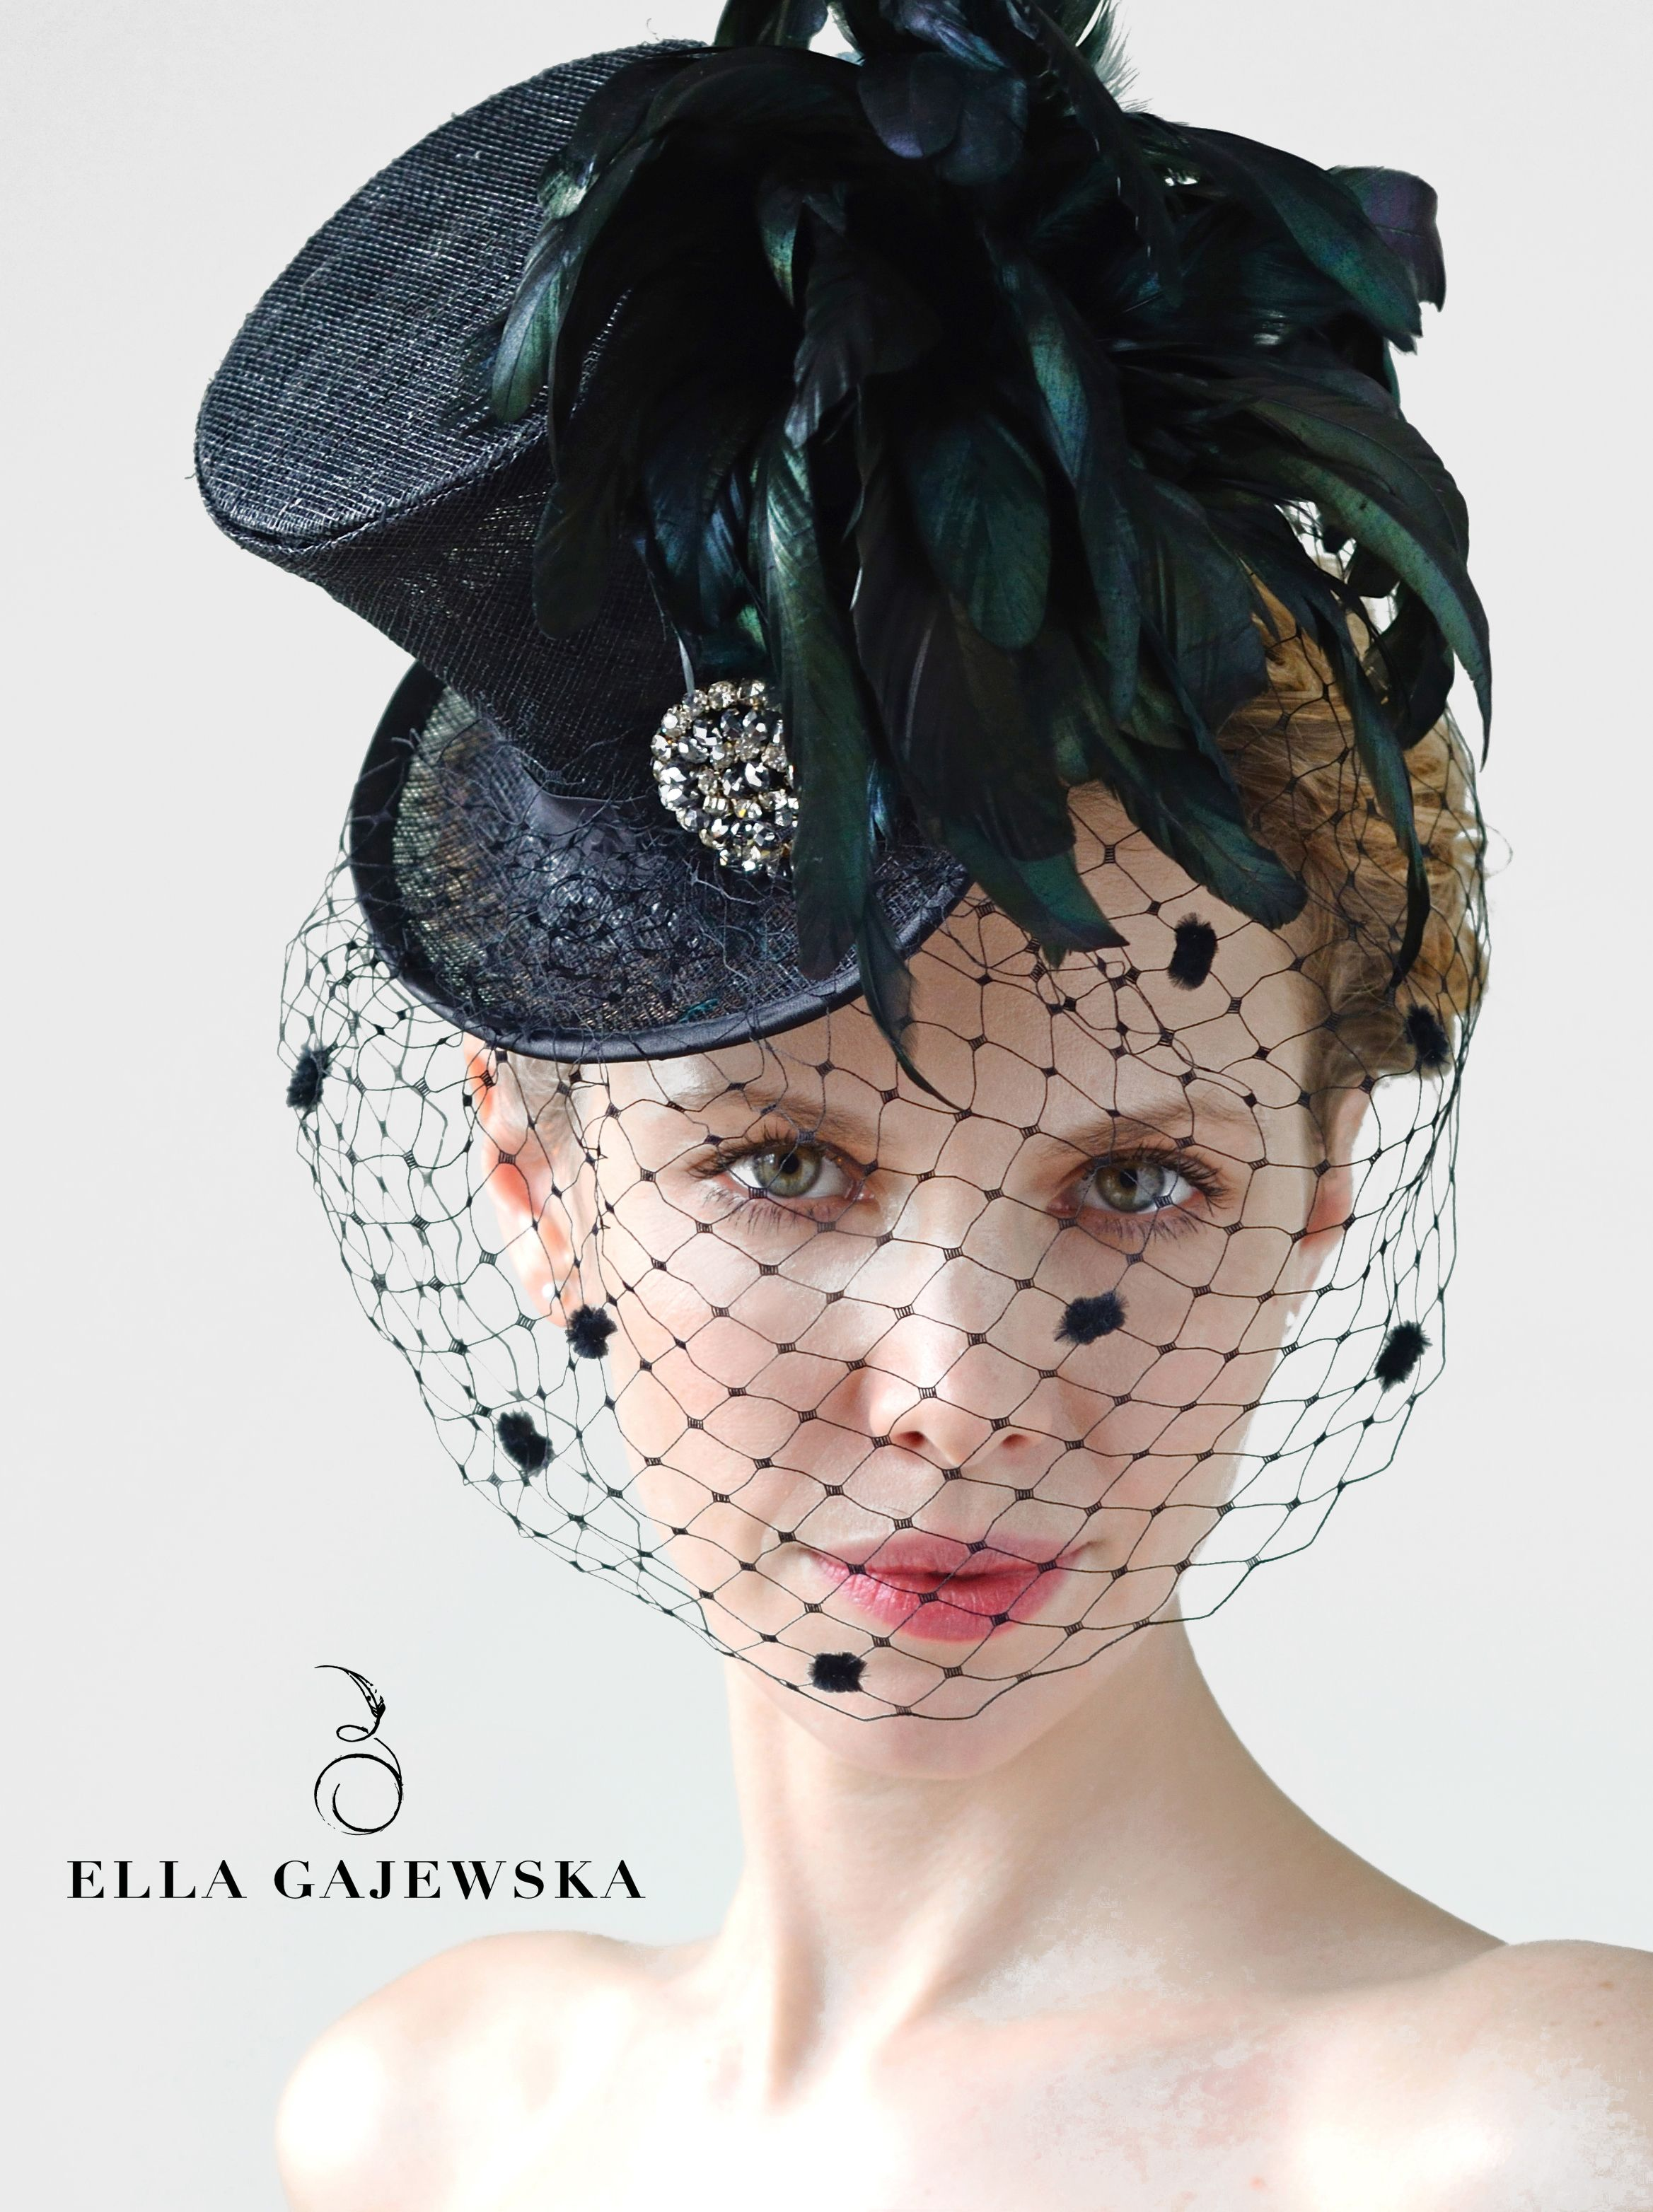 d93fd893ae132 Mini Top Hat - Black with Mysterious Birdcage Veiling - Steampunk Accessory  - Mad Hatter - Handmade Millinery - Elegant Feathers Fascinator - Racing ...